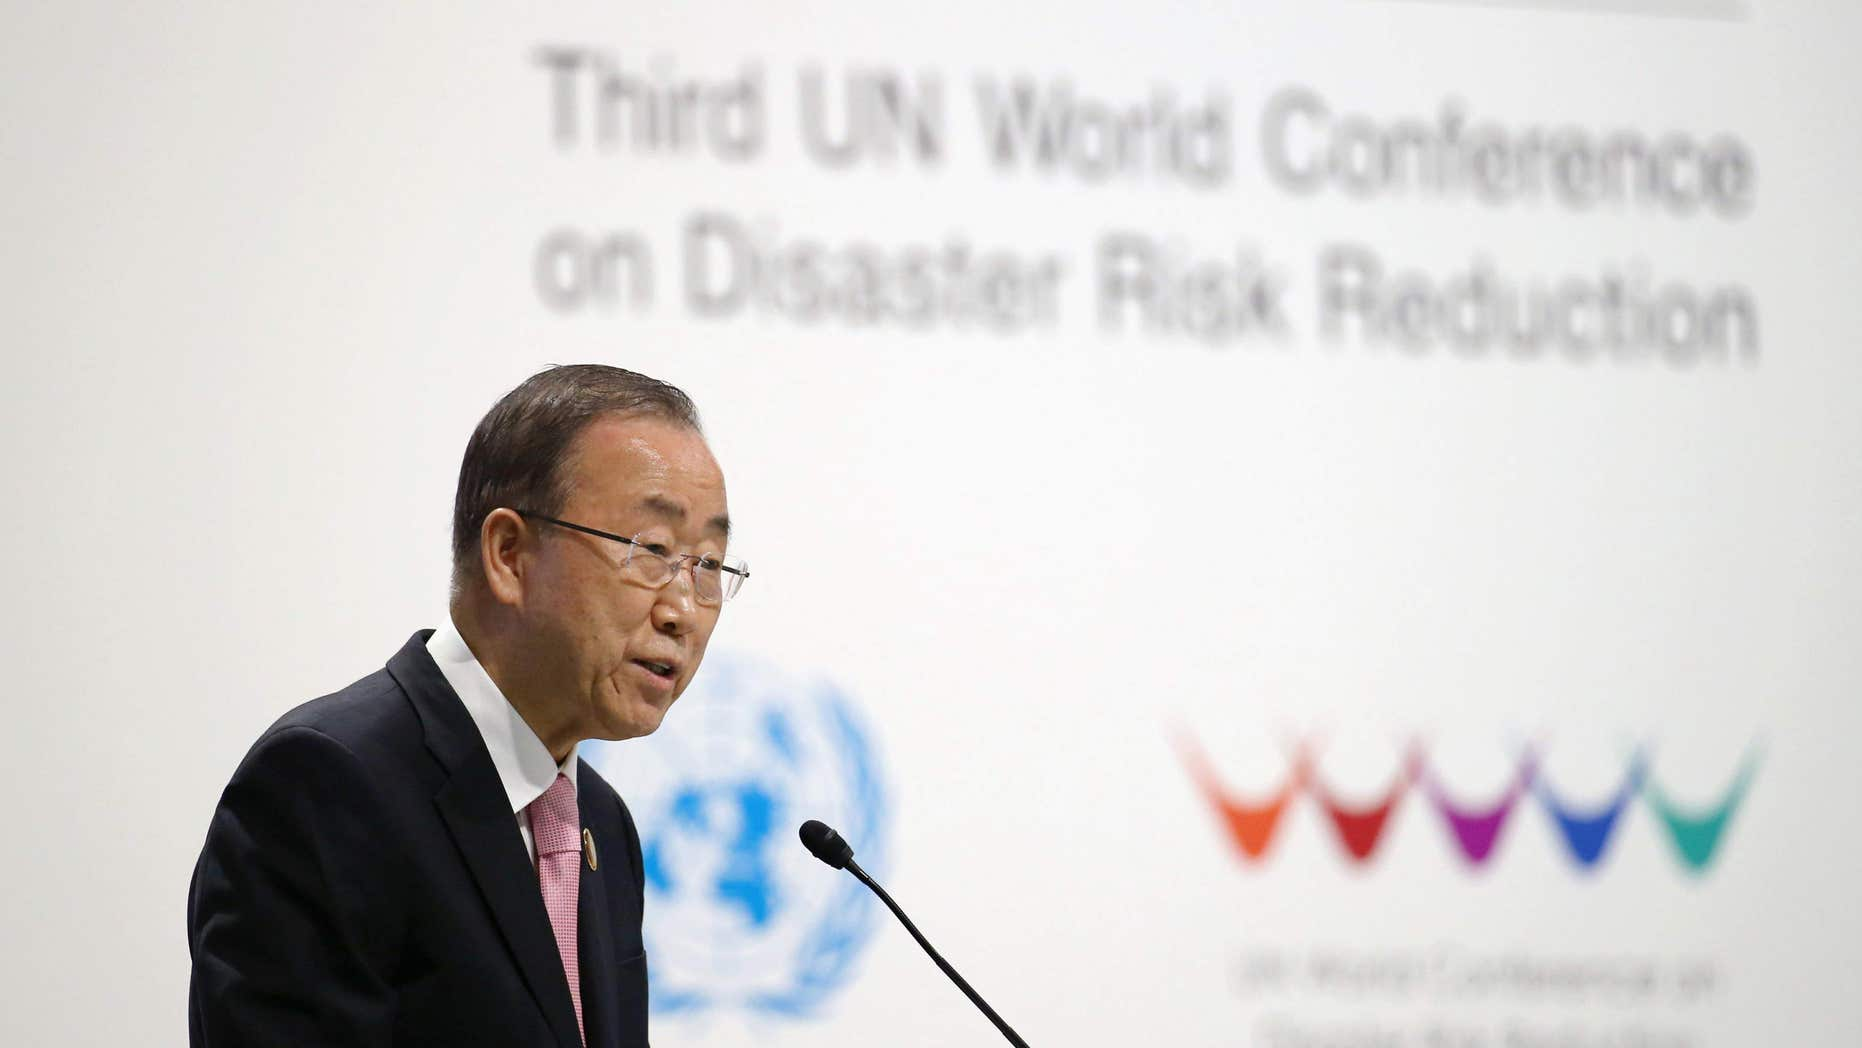 March 14, 2015: United Nations Secretary General Ban Ki-moon addresses the participants at the start of the U.N. World Conference on Disaster Risk Reduction in Sendai, northeastern Japan.